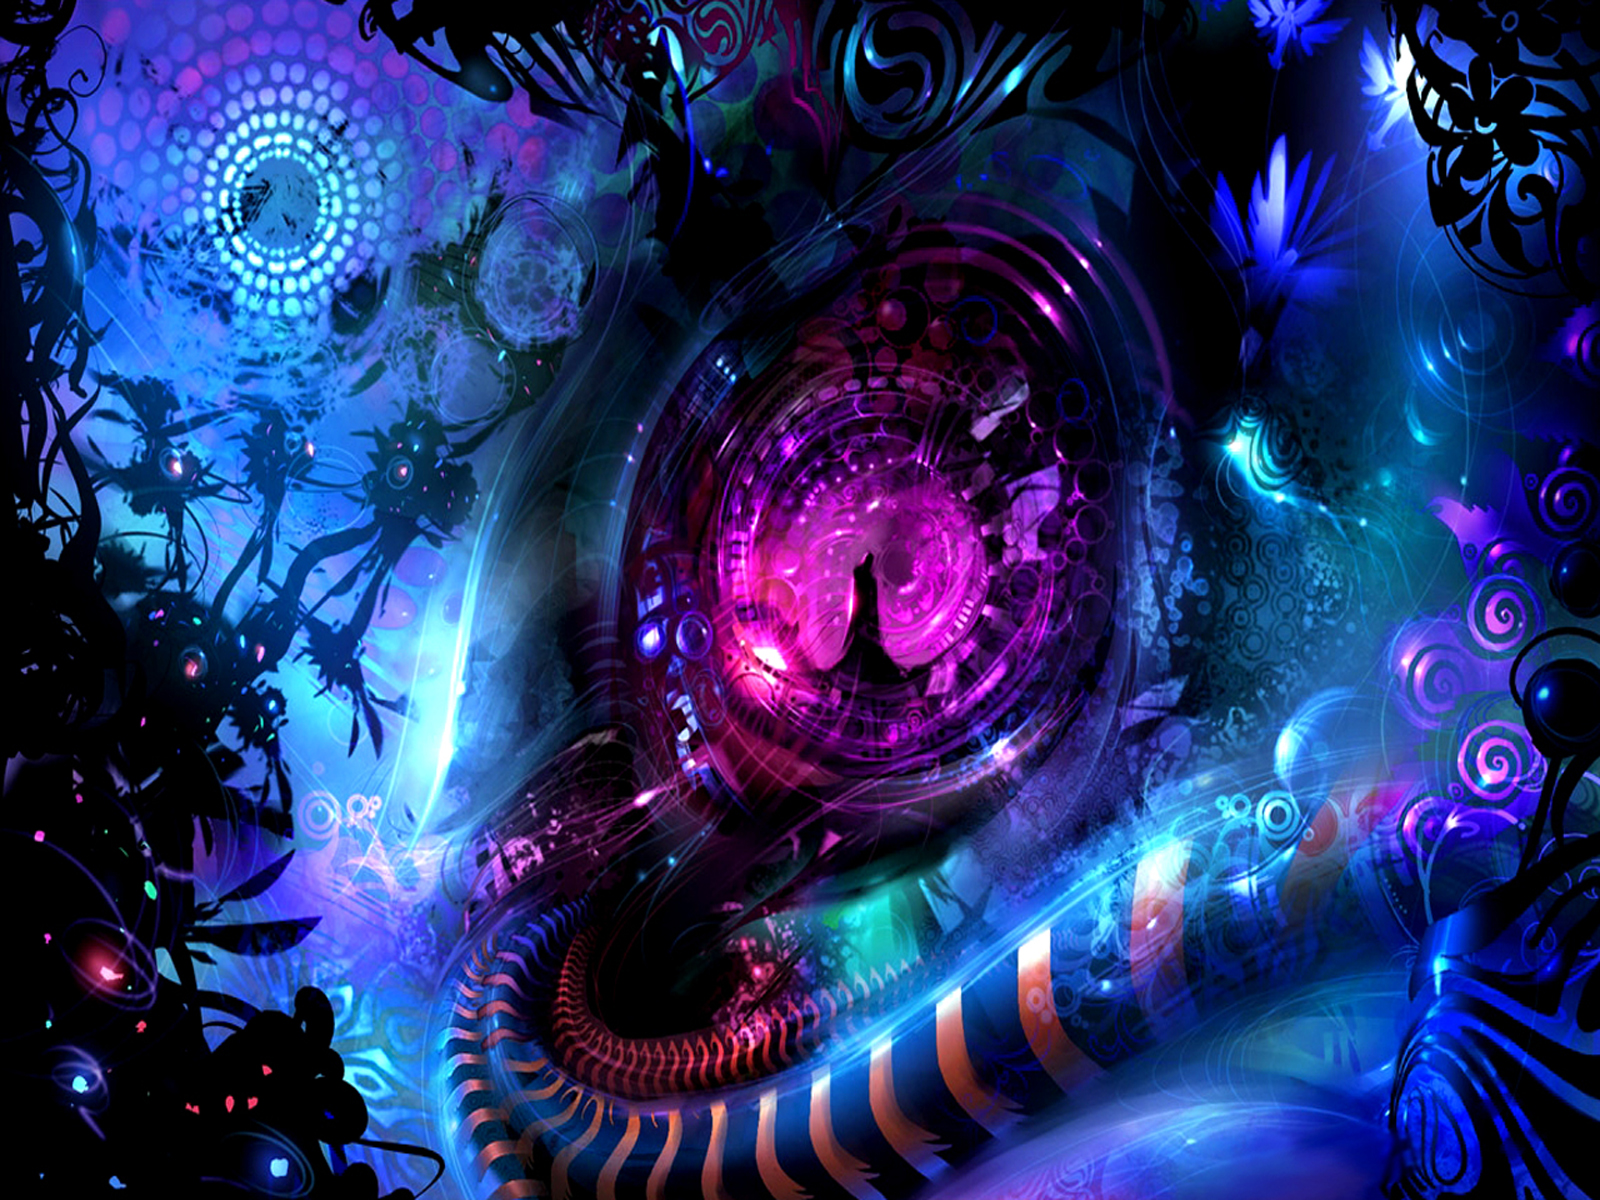 New art funny wallpapers jokes sci fi abstract wallpapers full hd